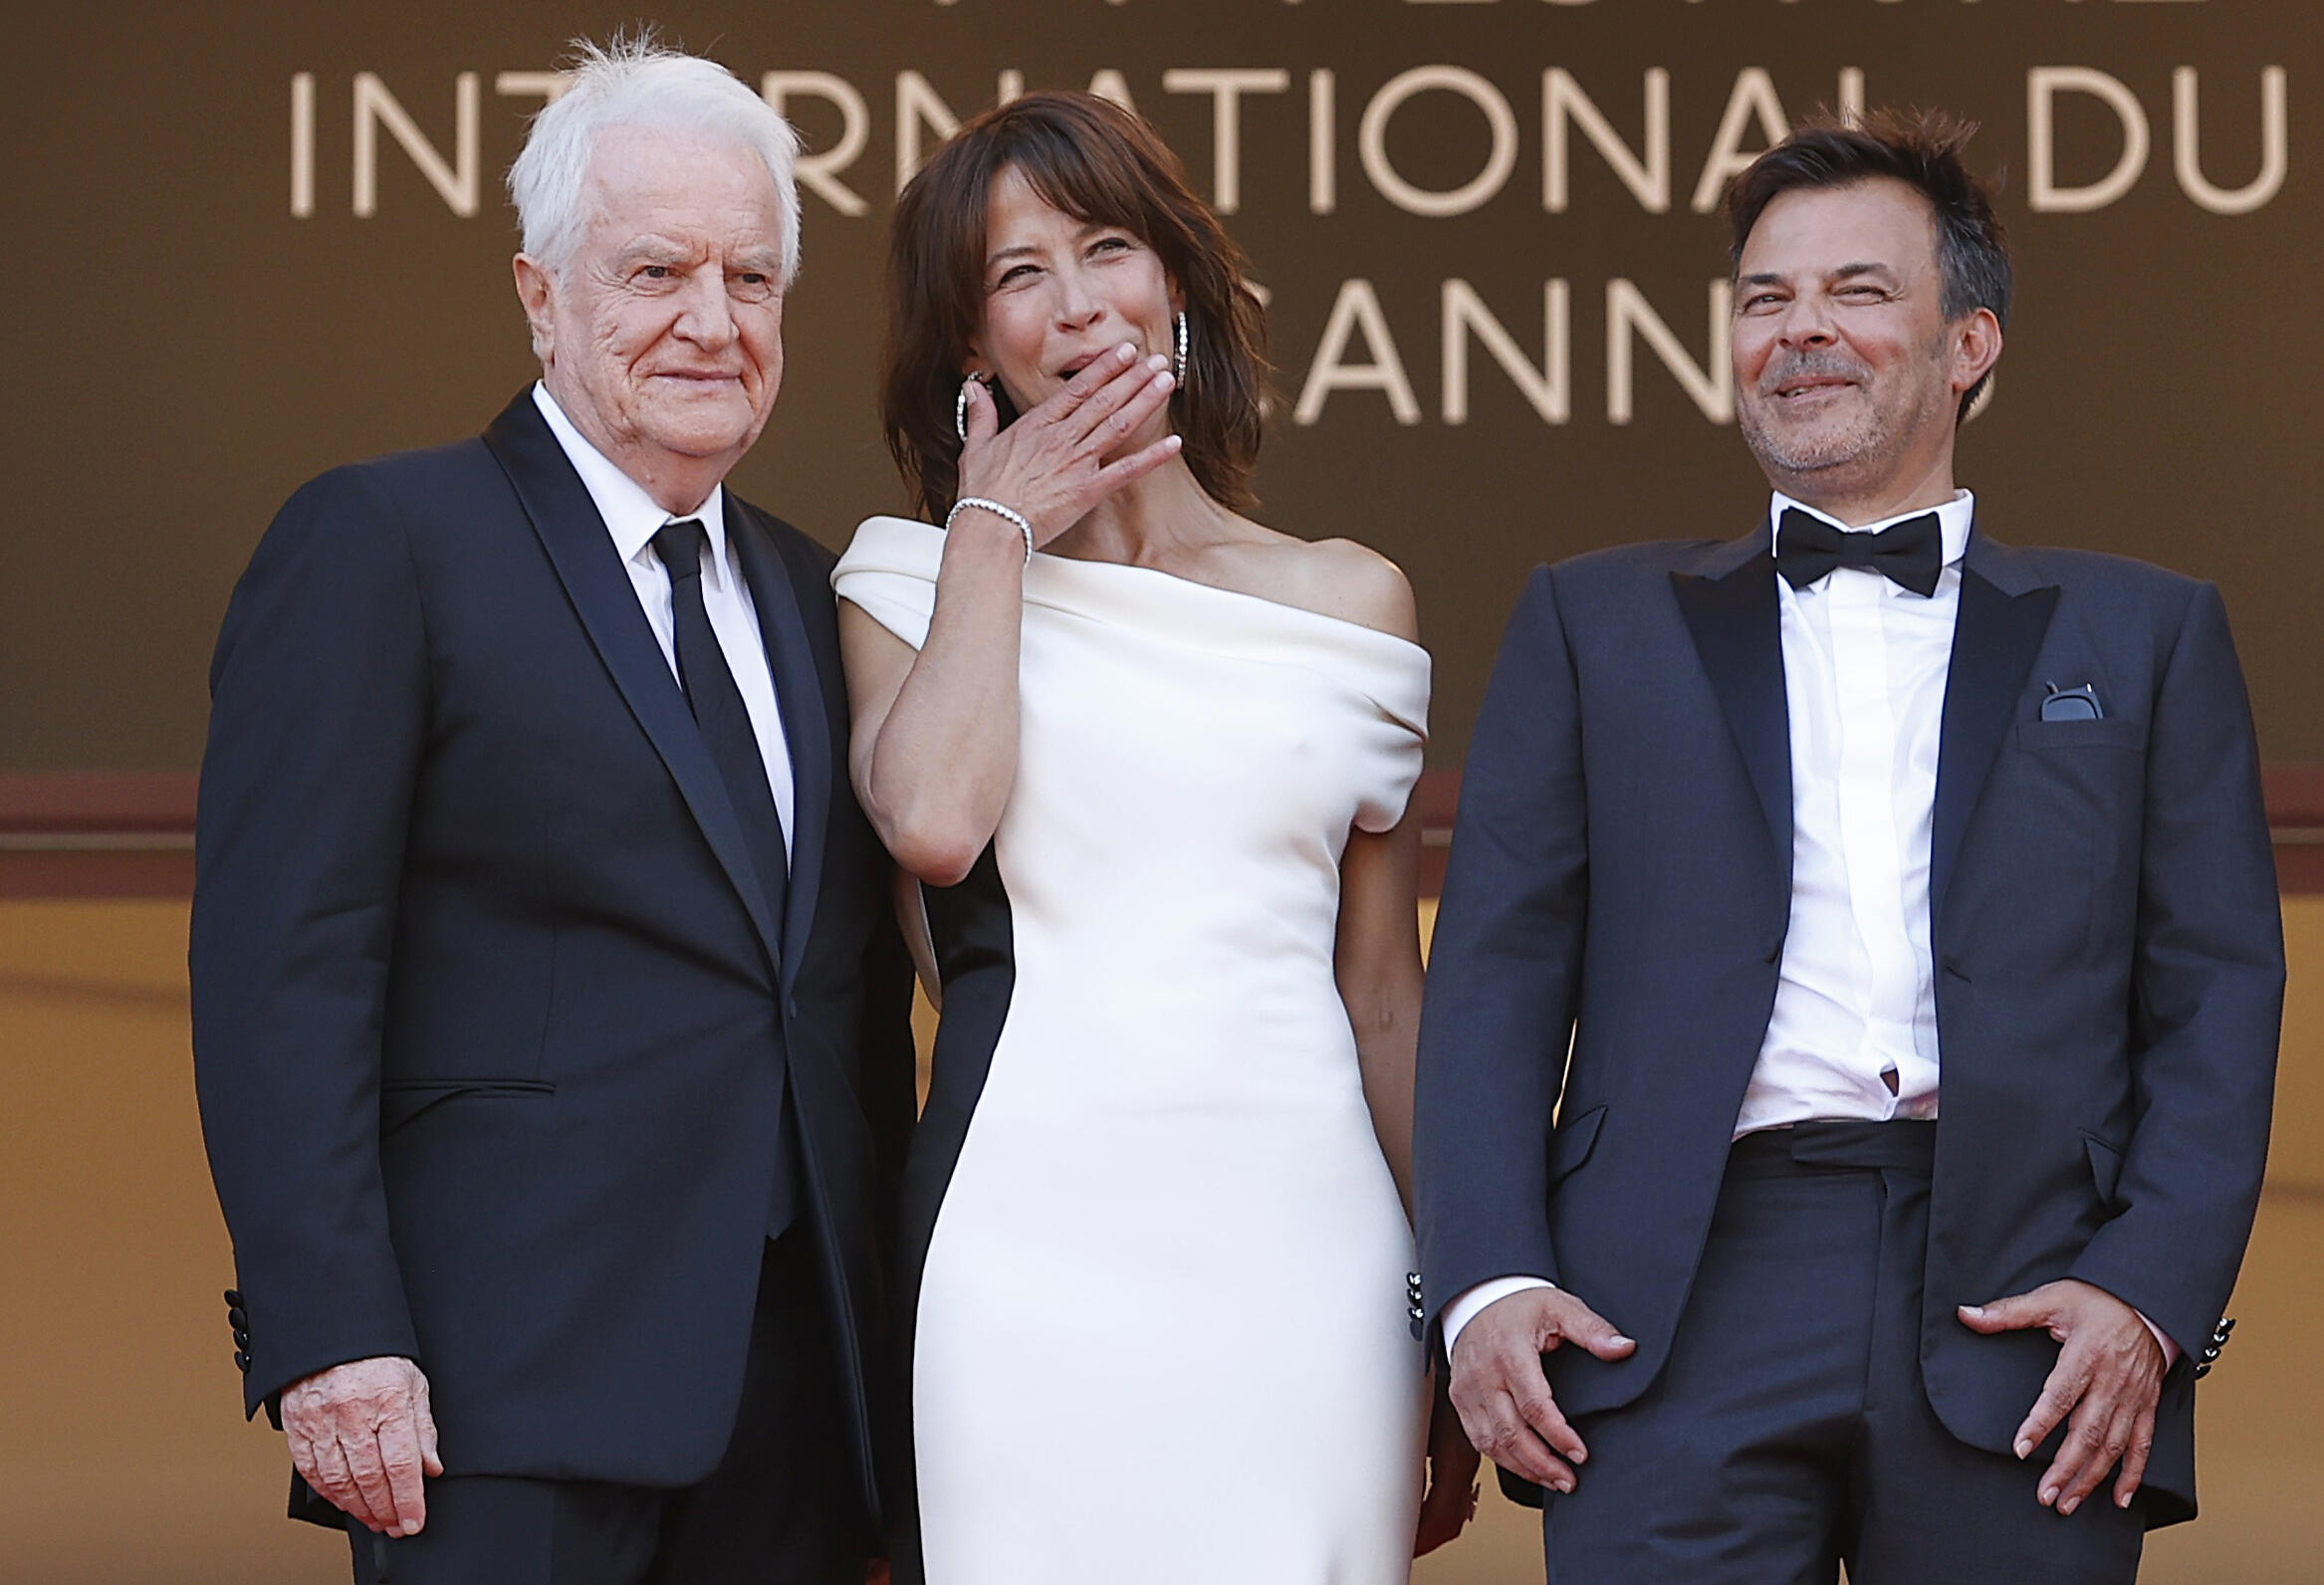 2021-07-07T170313Z_945655801_UP1EH771BDBH4_RTRMADP_3_FILMFESTIVAL-CANNES-EVERYTHING-WENT-FINE